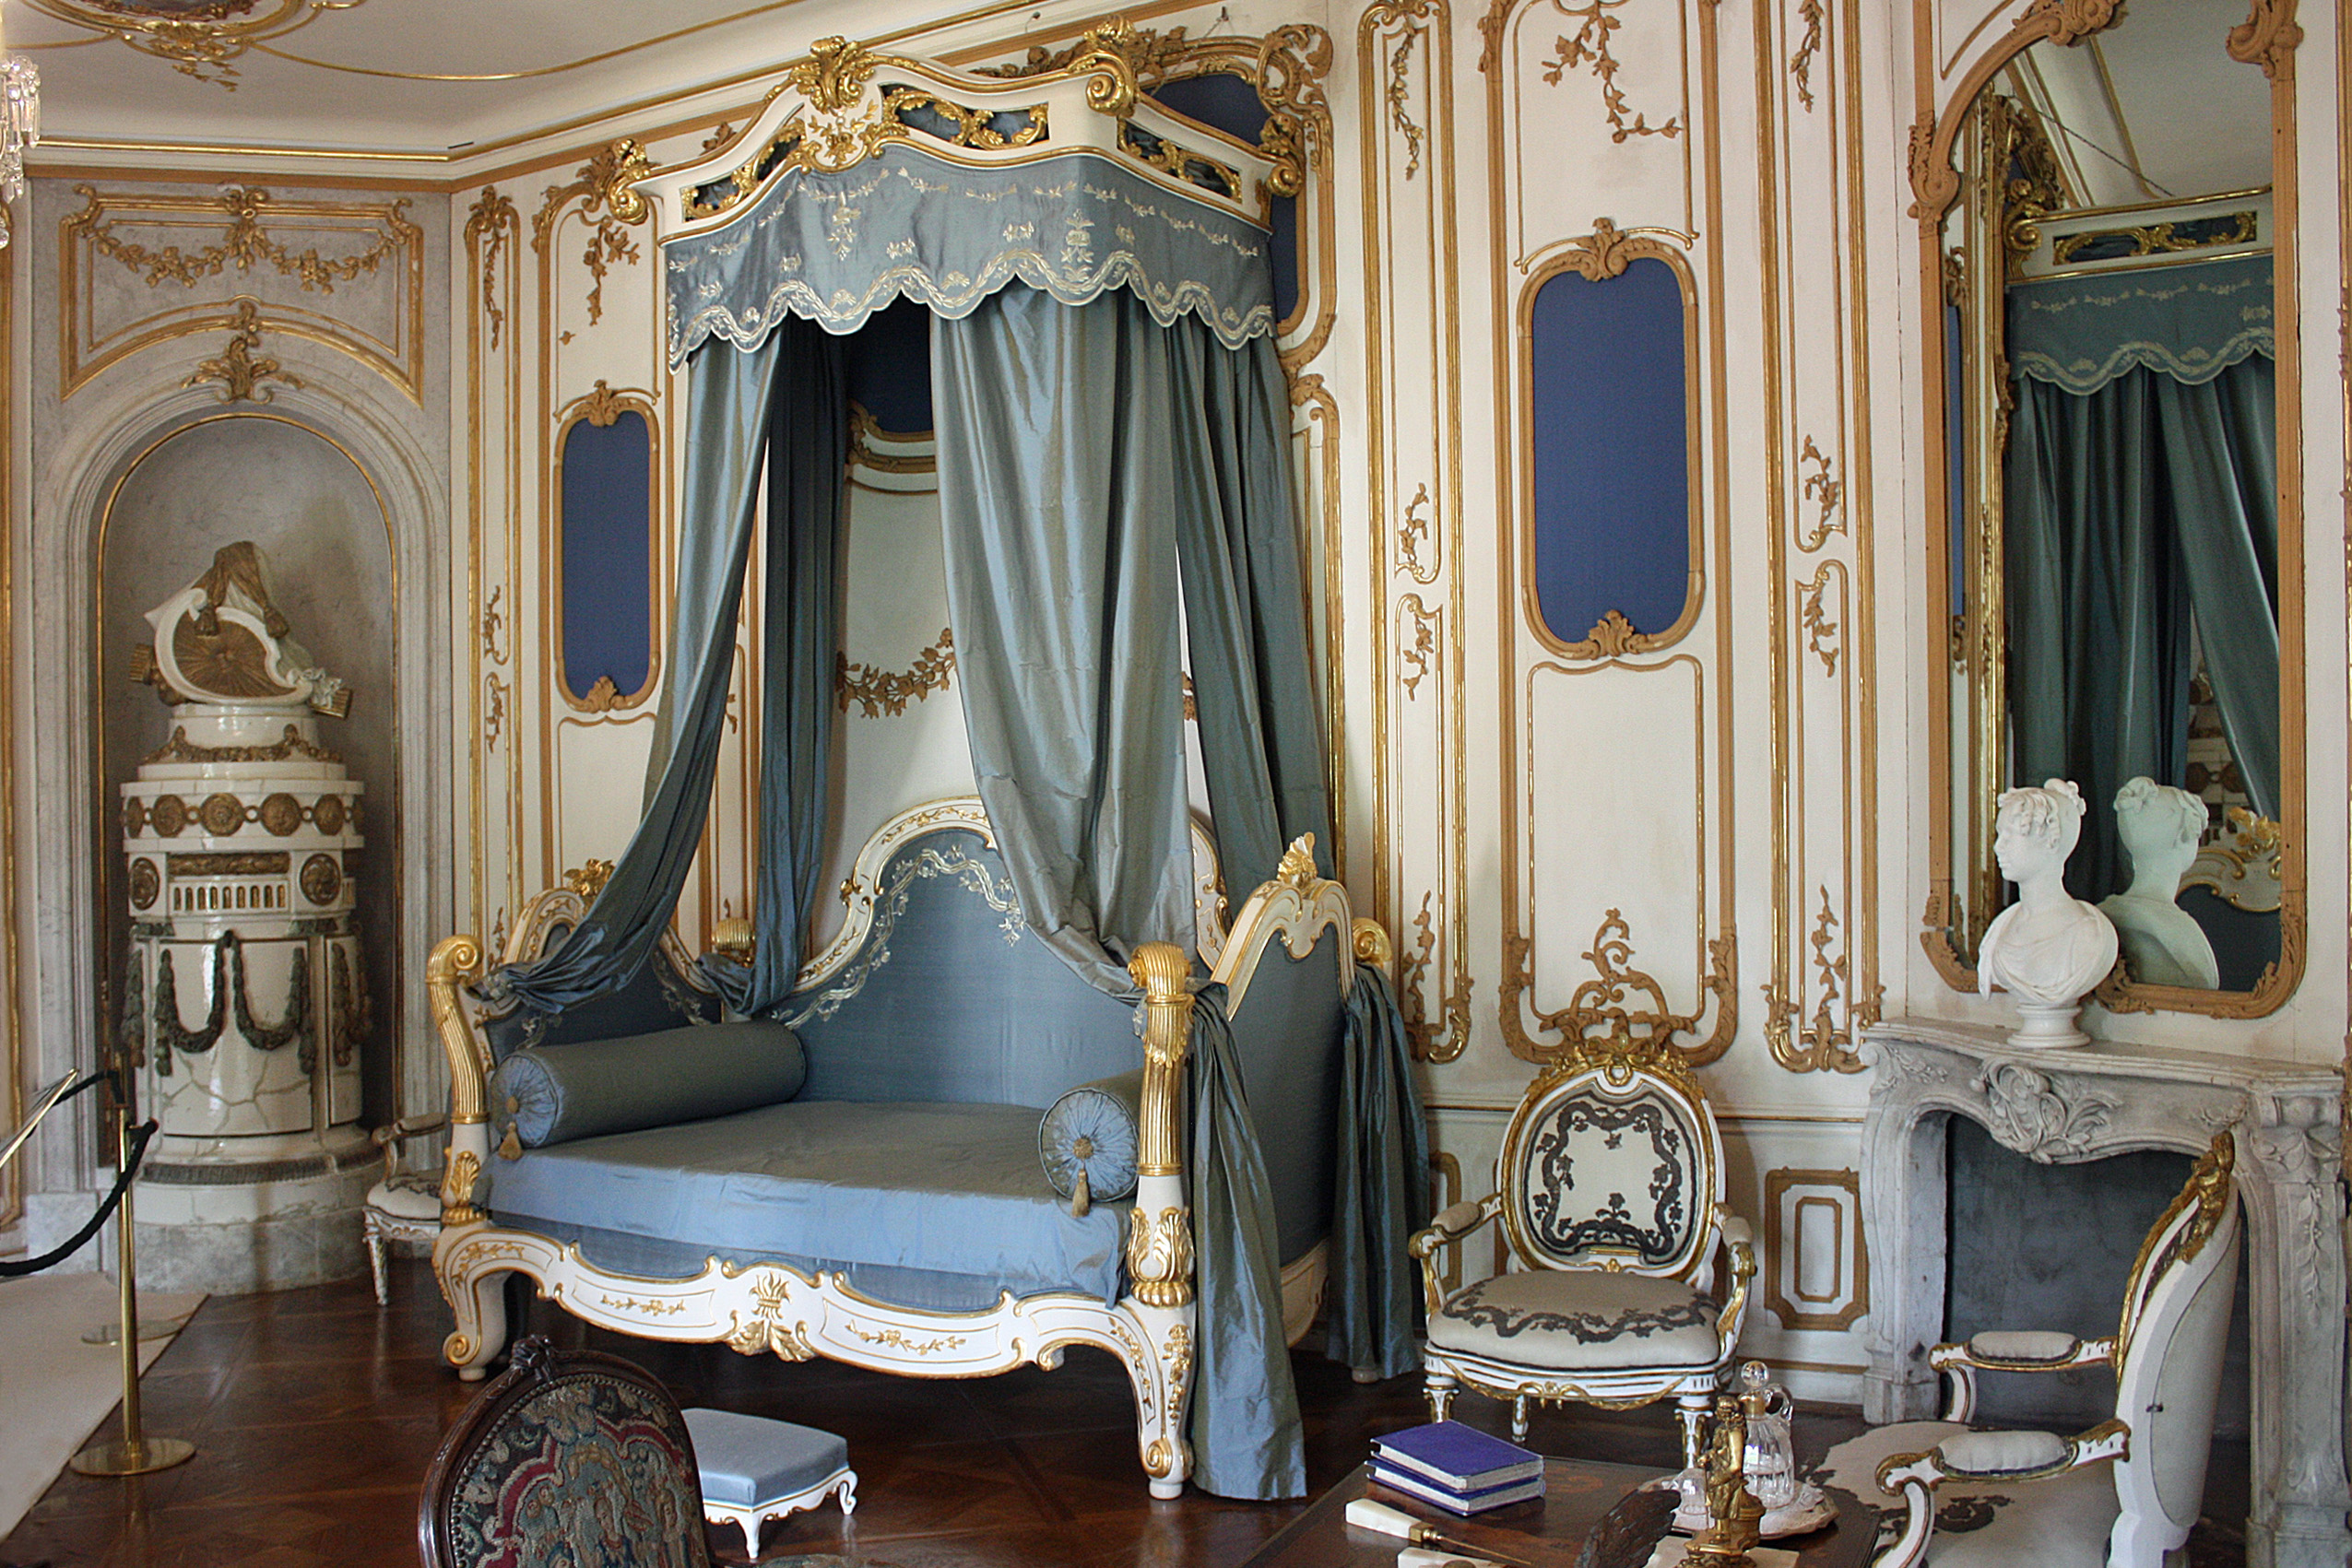 FileFertd Chteau Esterhaza Bedroom Of The PrinceJPG